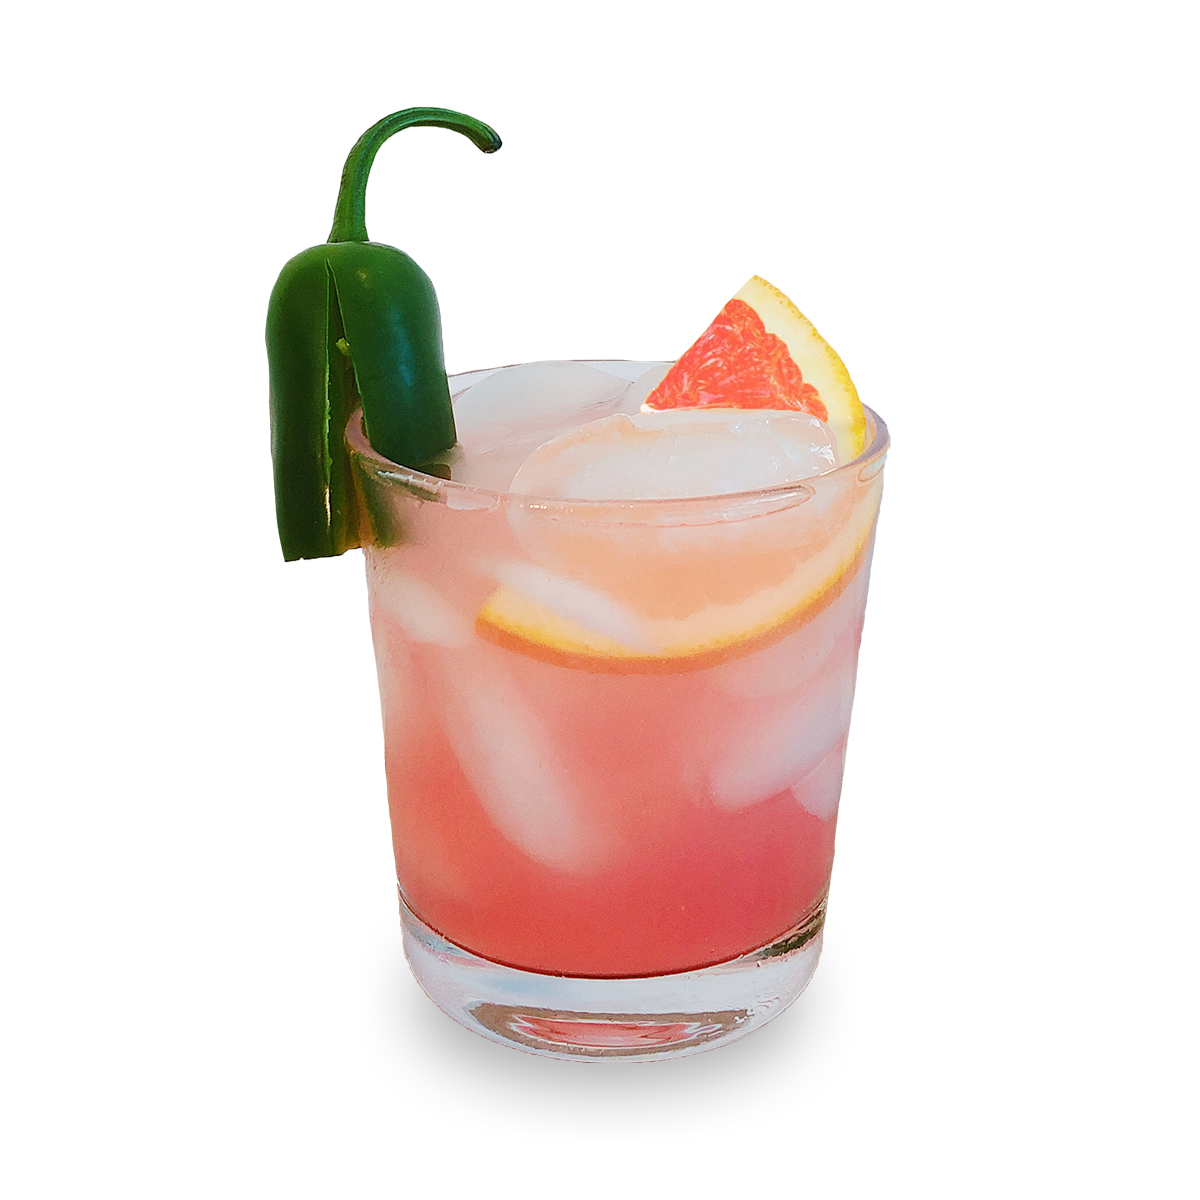 SPICY WATERMELON MARGARITA - 2 oz Tres Papalote Mezcal.15 oz Triple Sec.5 oz fresh Lime Juice.5 oz Simple Syrup.25 cup Muddled Watermelondash of Kosher Salt and Cayenne2 slices Jalapeno